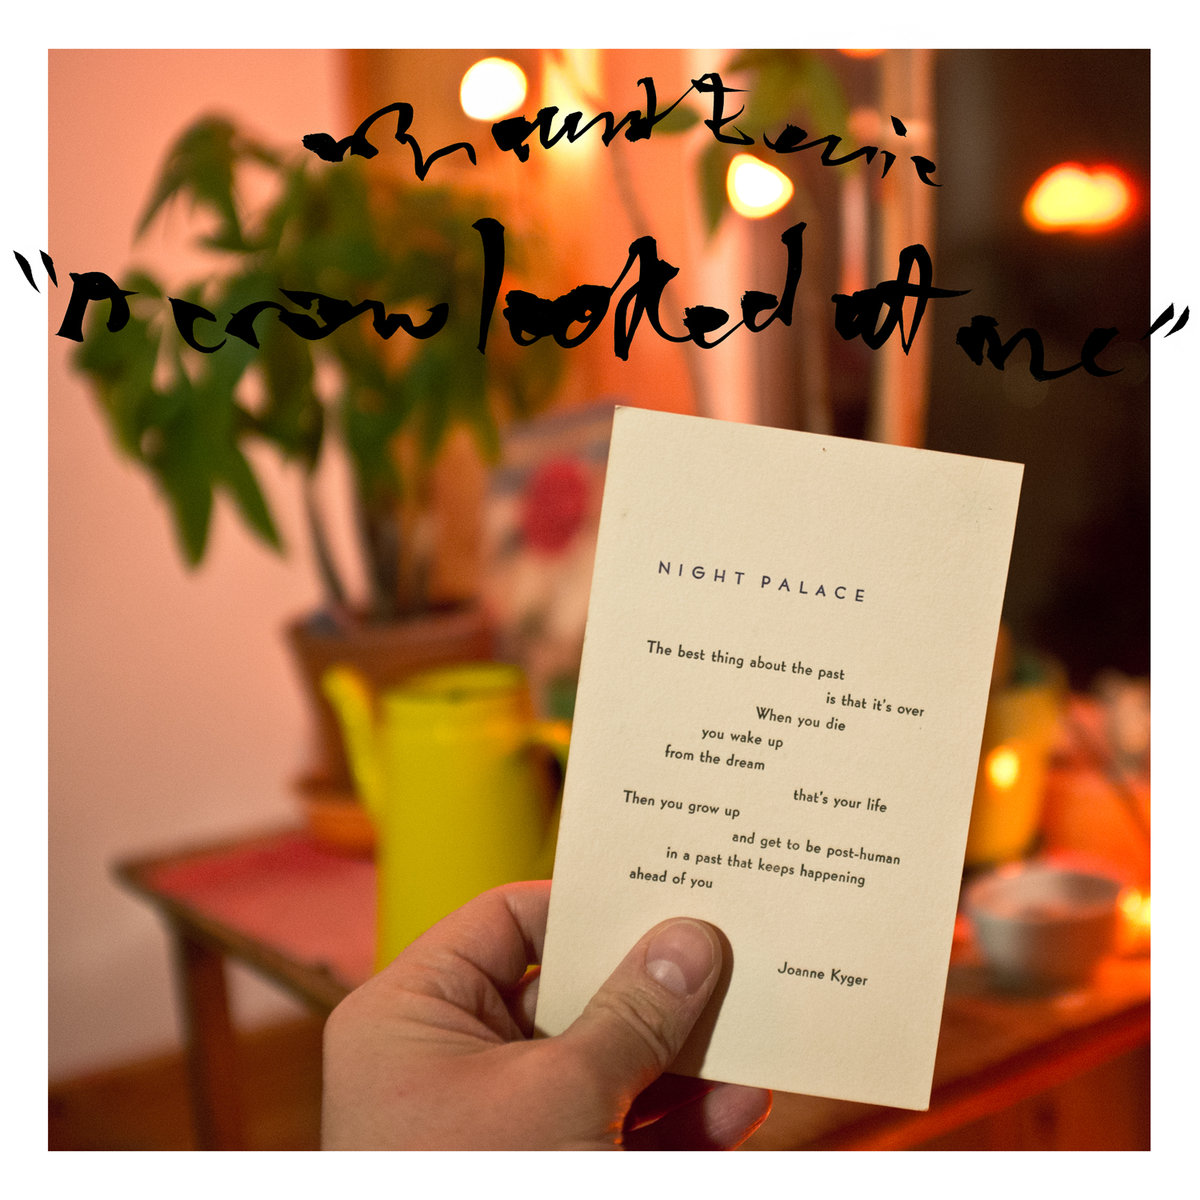 3. Mount Eerie - A Crow Looked at Me [P.W. Elverum & Sun]